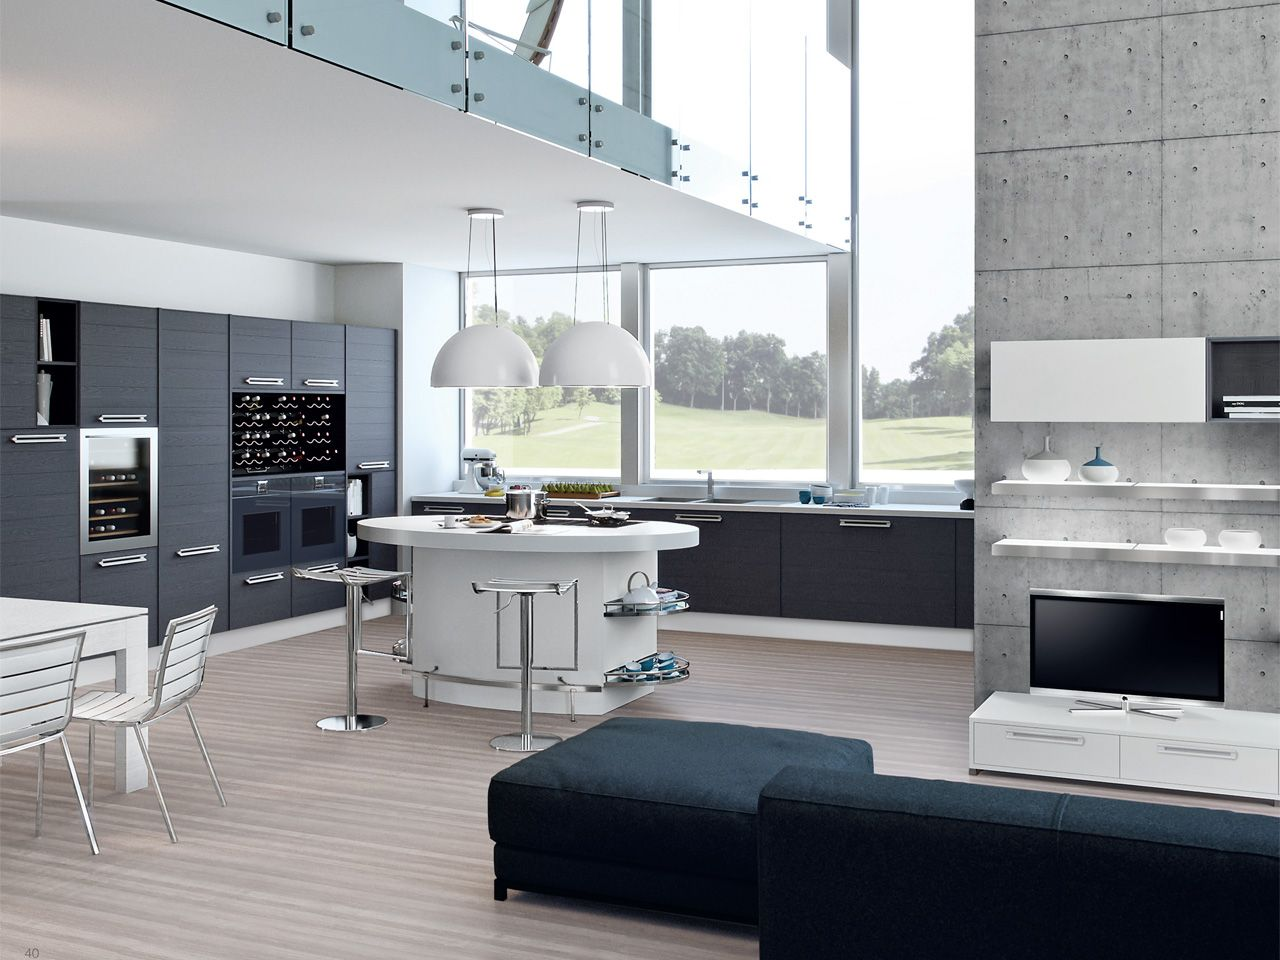 ADELE Project - Cucina Lube Moderna | Adele, Kitchens and Spaces